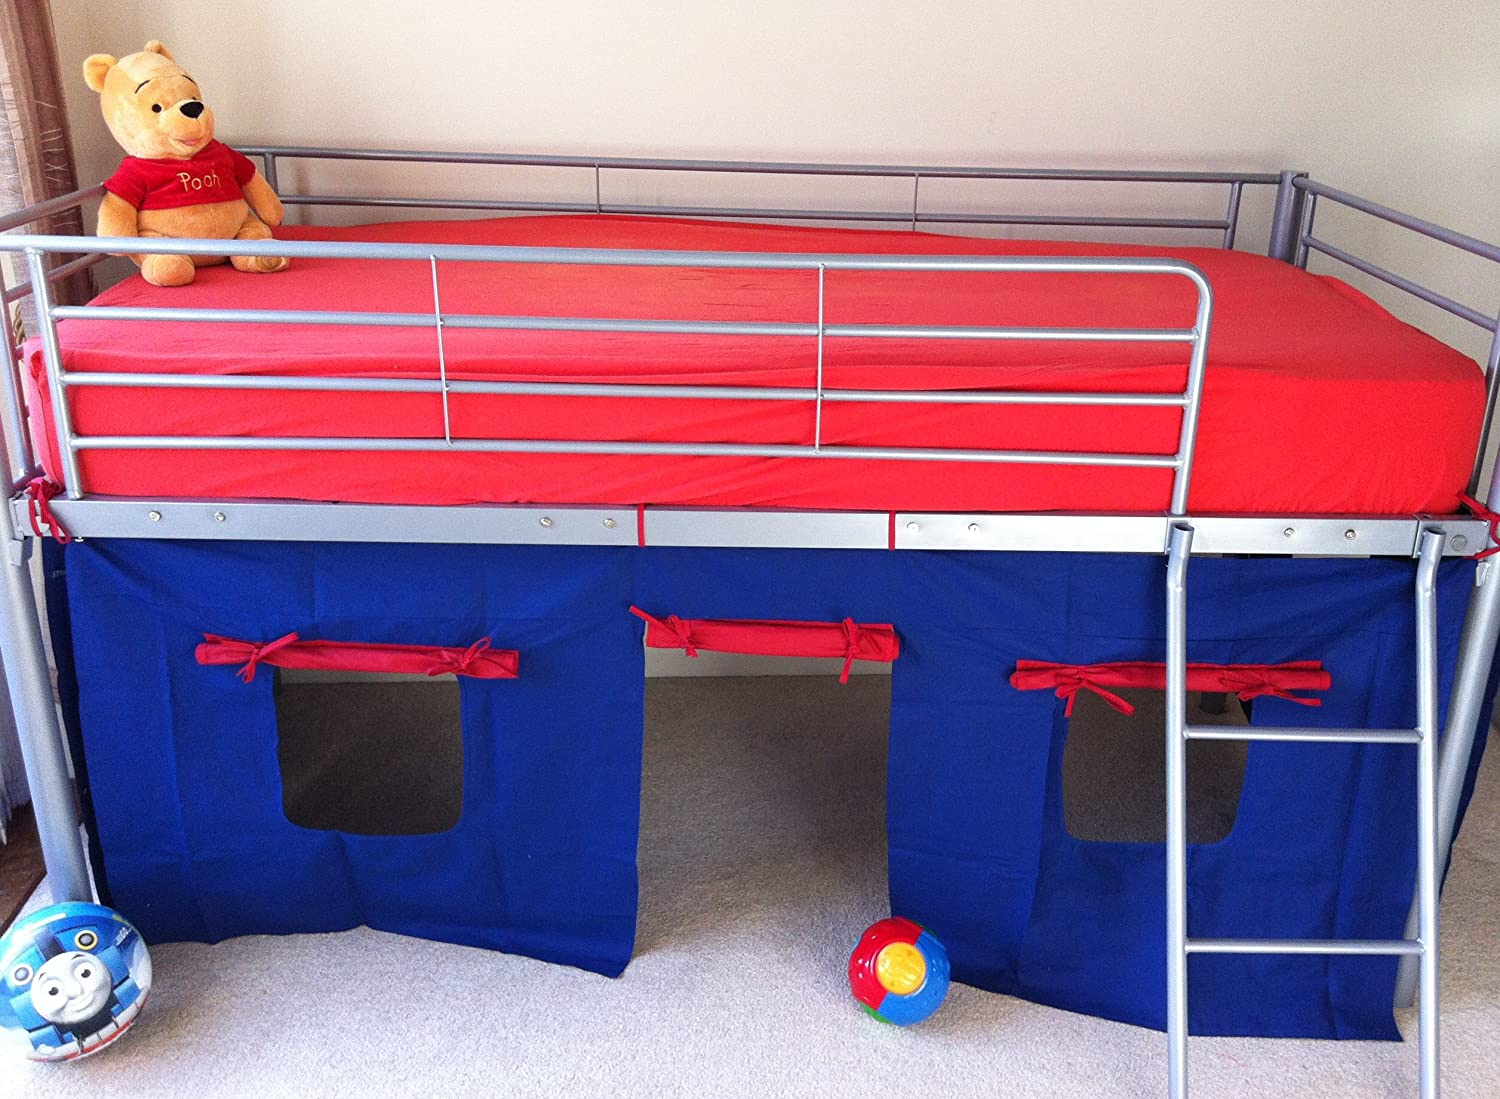 COSY STARS METAL MID SLEEPER CABIN BUNK BED WITH FUN PLAYFUL TENT BLUE RED Amazoncouk Kitchen Home